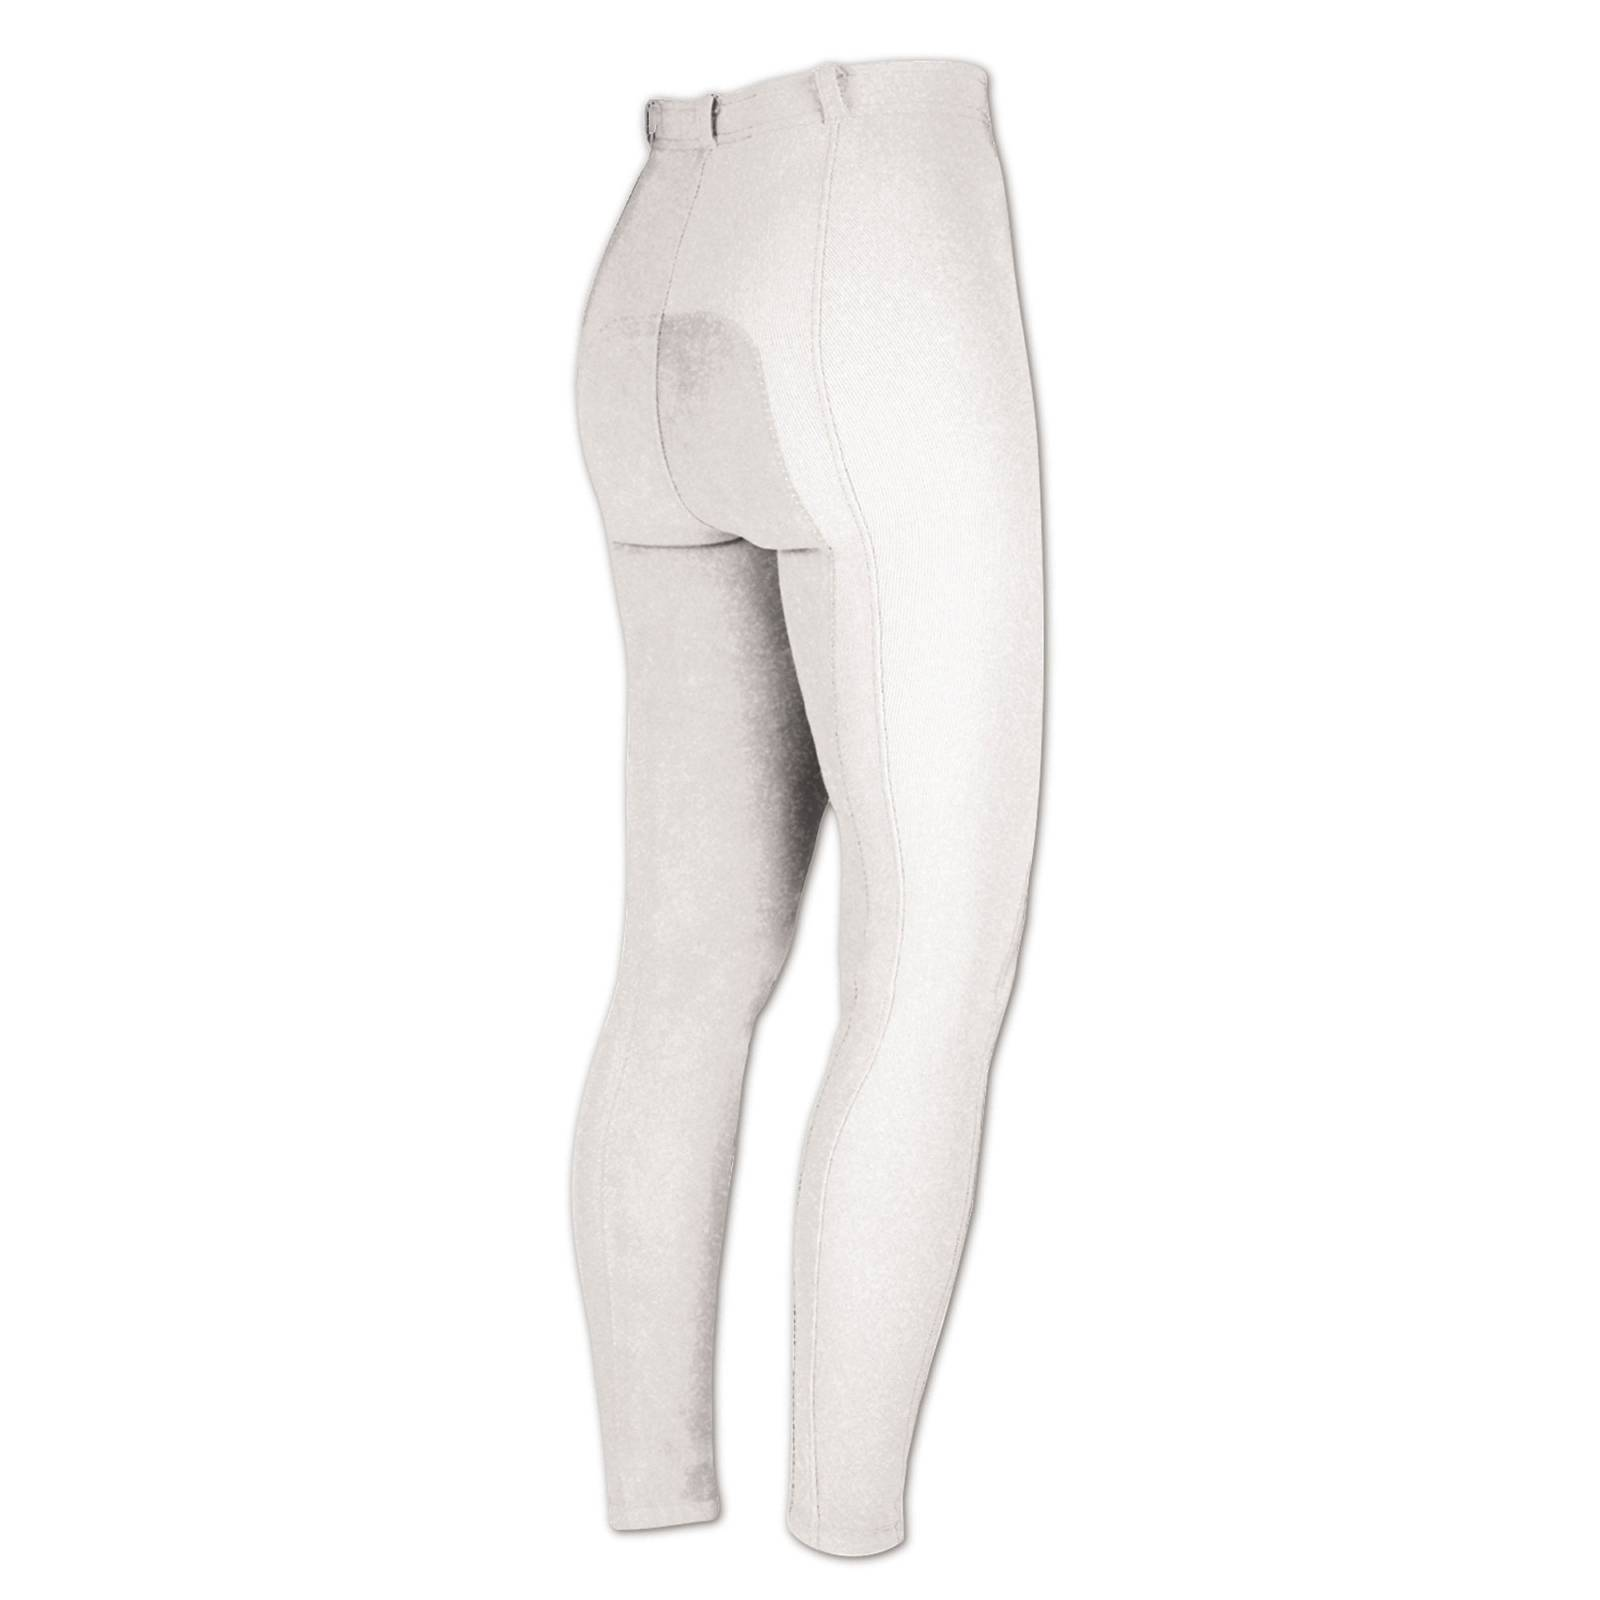 Irideon Women's Cadence Full Seat Breech